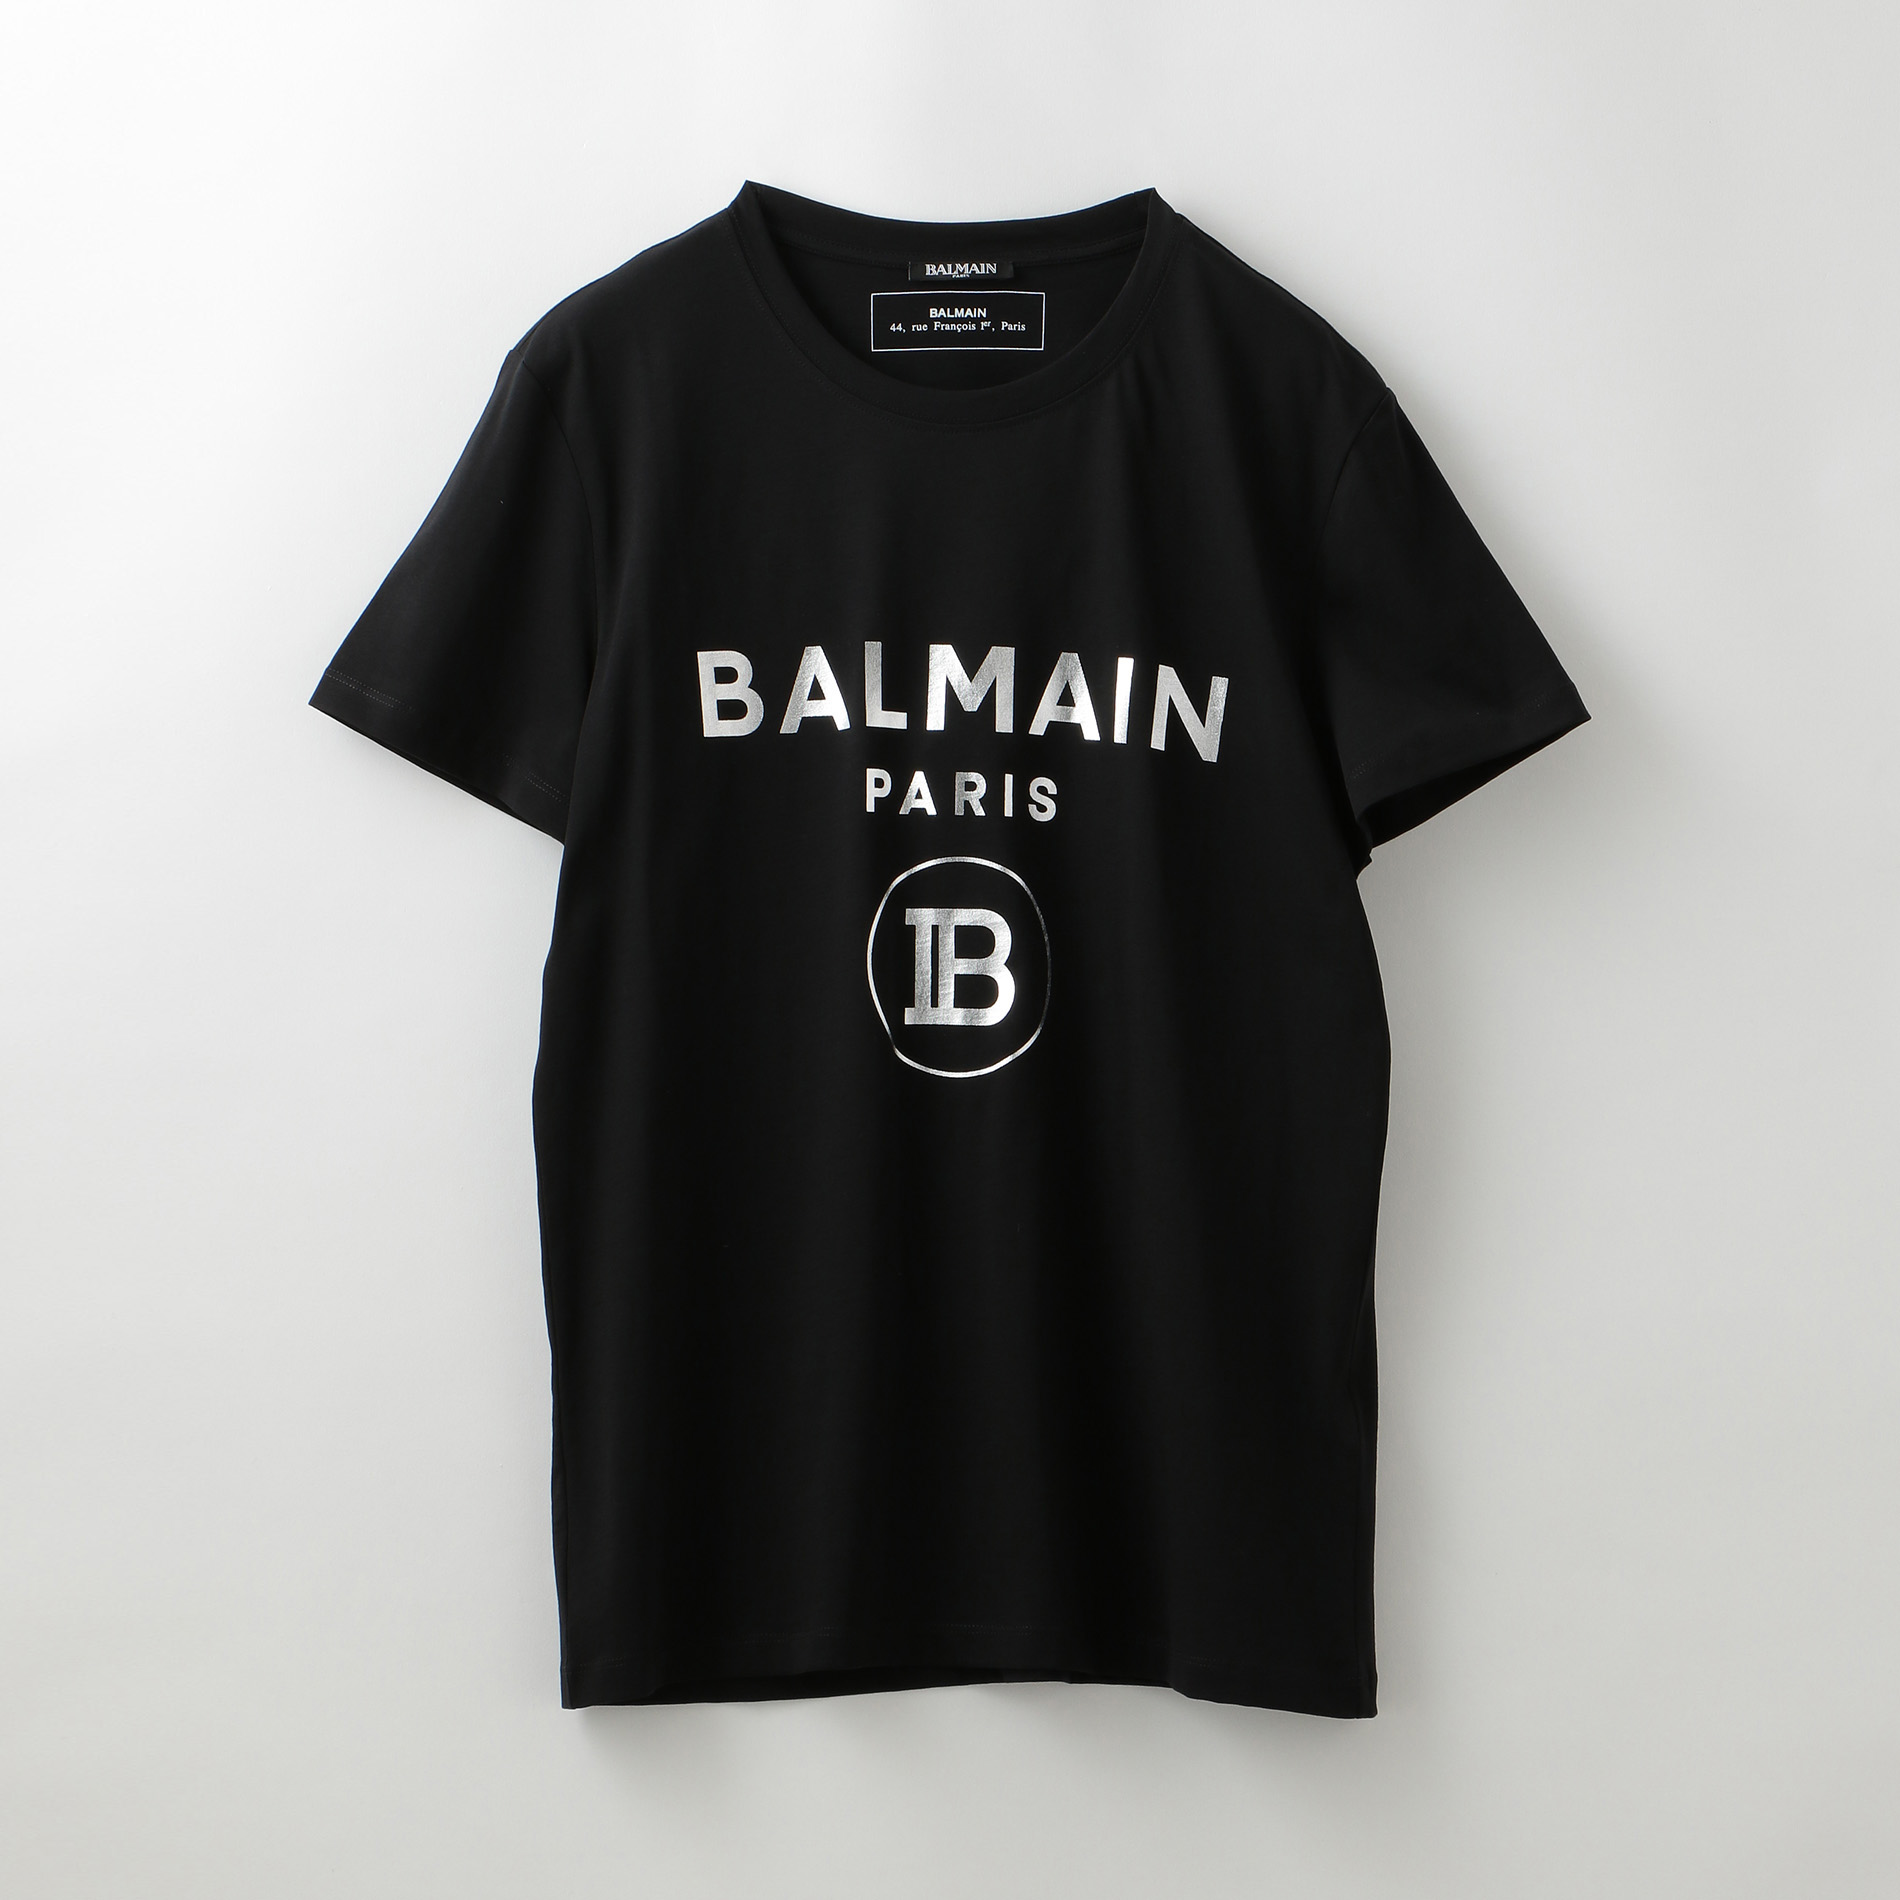 【BALMAIN】MEN BALMAIN T-SHIRT 92.1601.I194